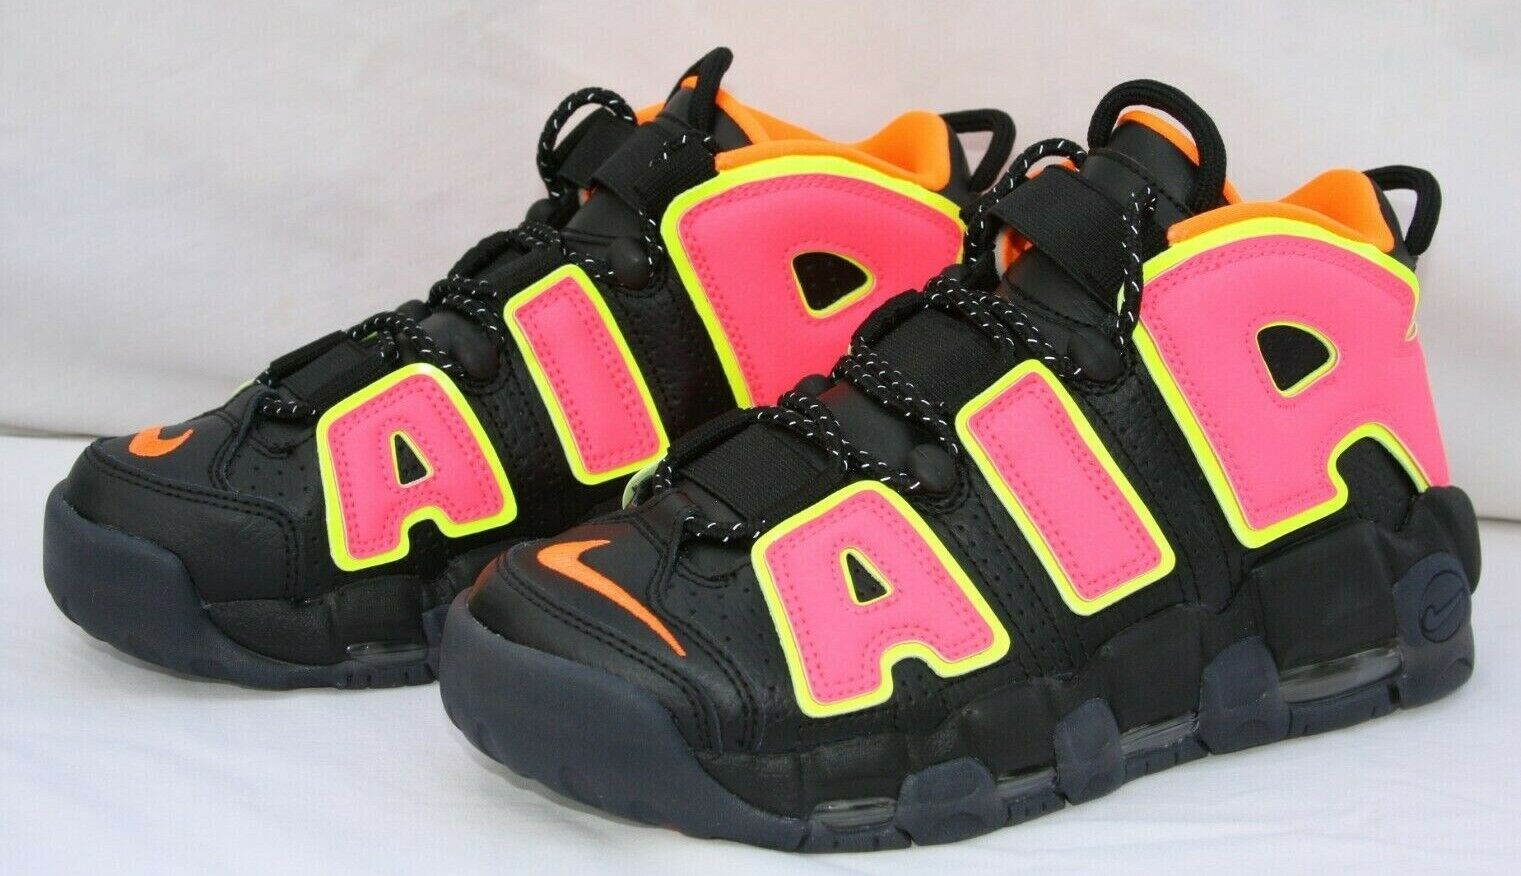 Nike Air More Uptempo Hot Punch Pippen Basketball shoes Women Sz 7.5 (917593-002)